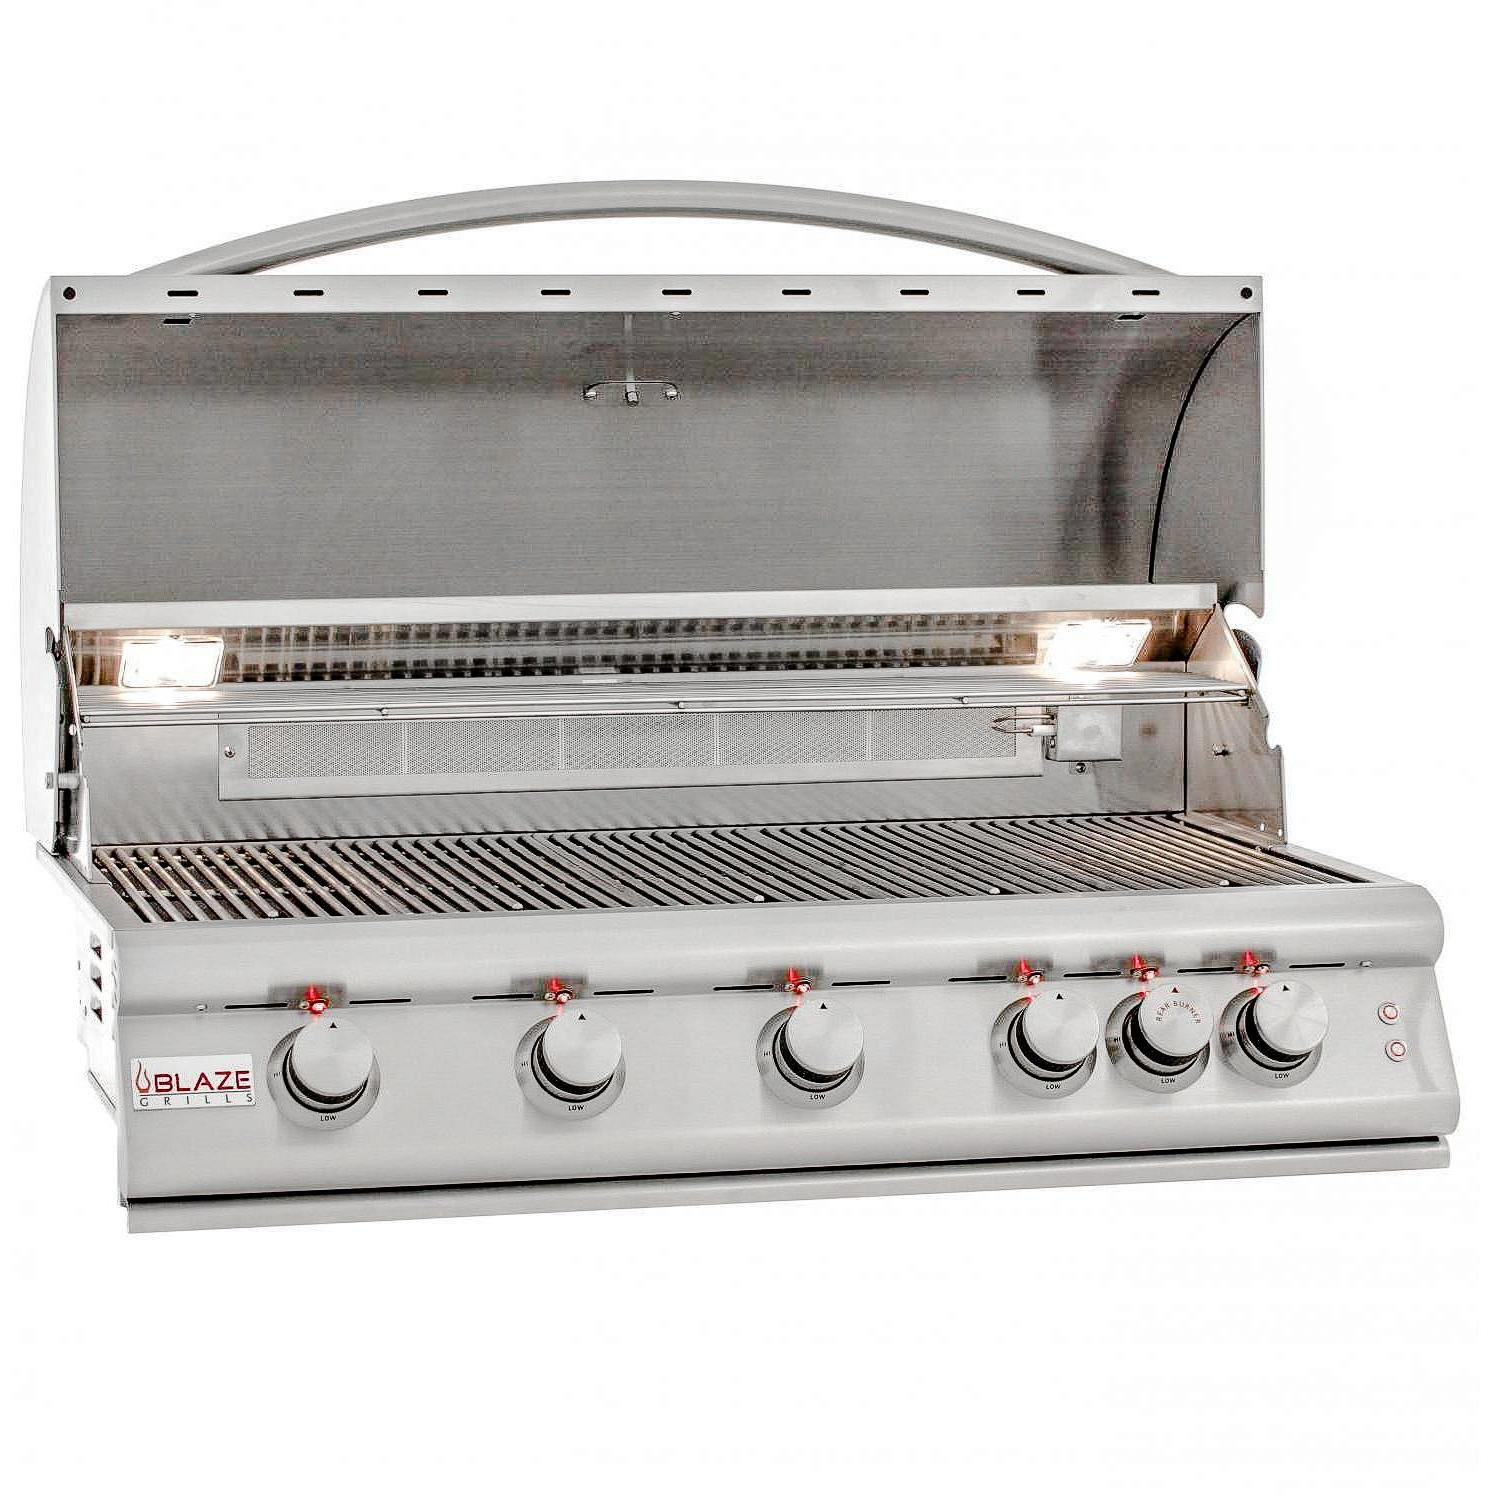 Blaze Lte 40-inch 5-burner Built-in Natural Gas Grill With Rear Infrared Burner & Grill Lights - Blz-5lte2-ng by Blaze Outdoor Products